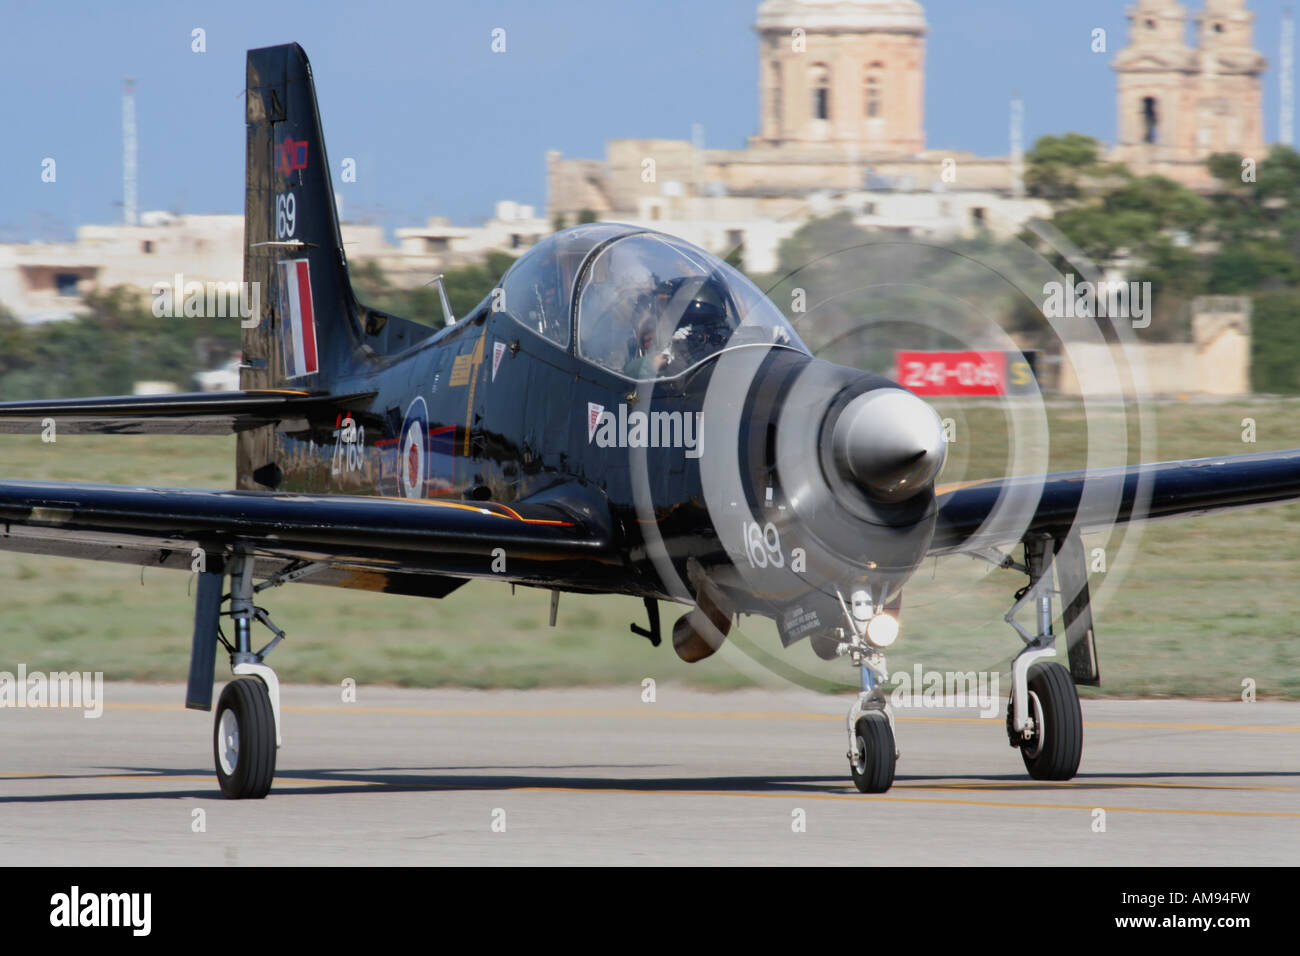 Shorts Tucano T1 single-engine turboprop trainer plane of the Royal Air Force taxiing after a display in Malta - Stock Image